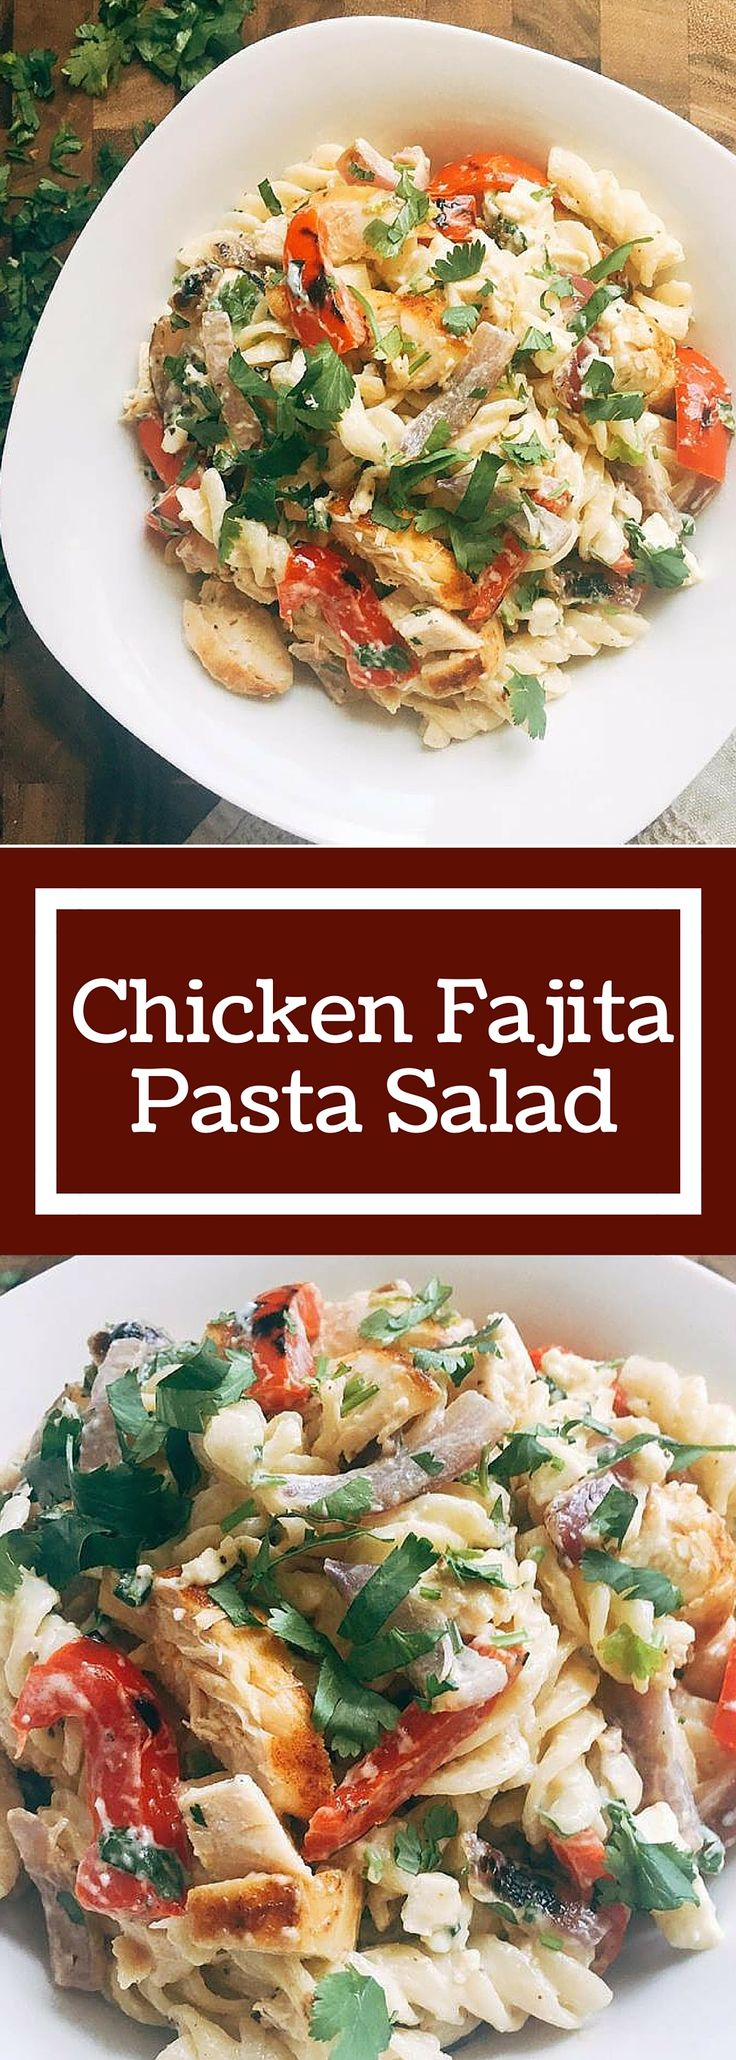 Flavors of Citrus Chicken Fajitas are transformed into a pasta salad! Kid friendly and a crowd pleaser, this Chicken Fajita Pasta Salad is the perfect side dish for a cookout! | Three Olives Branch | www.threeolivesbranch.com